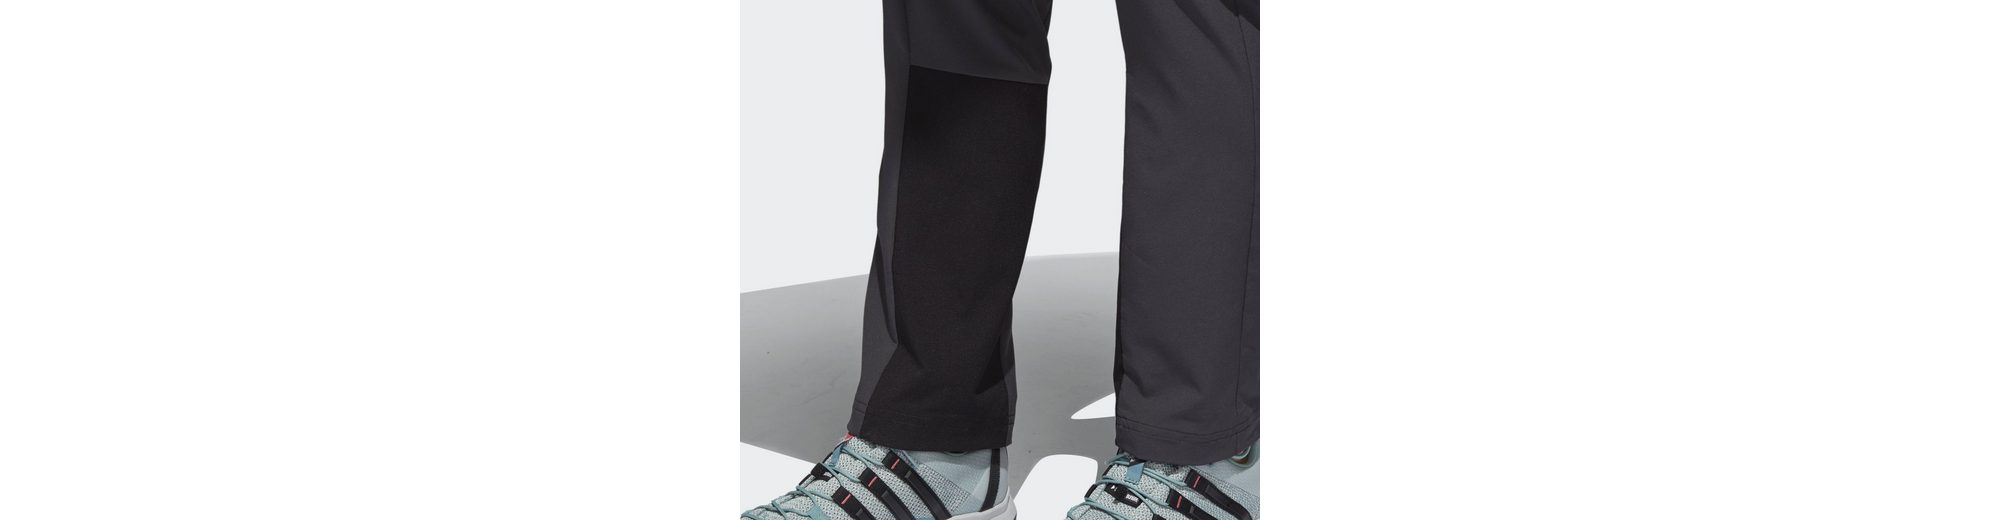 Mountain adidas Performance Flash Sporthose Pants Performance Sporthose adidas RXqnFw6X5